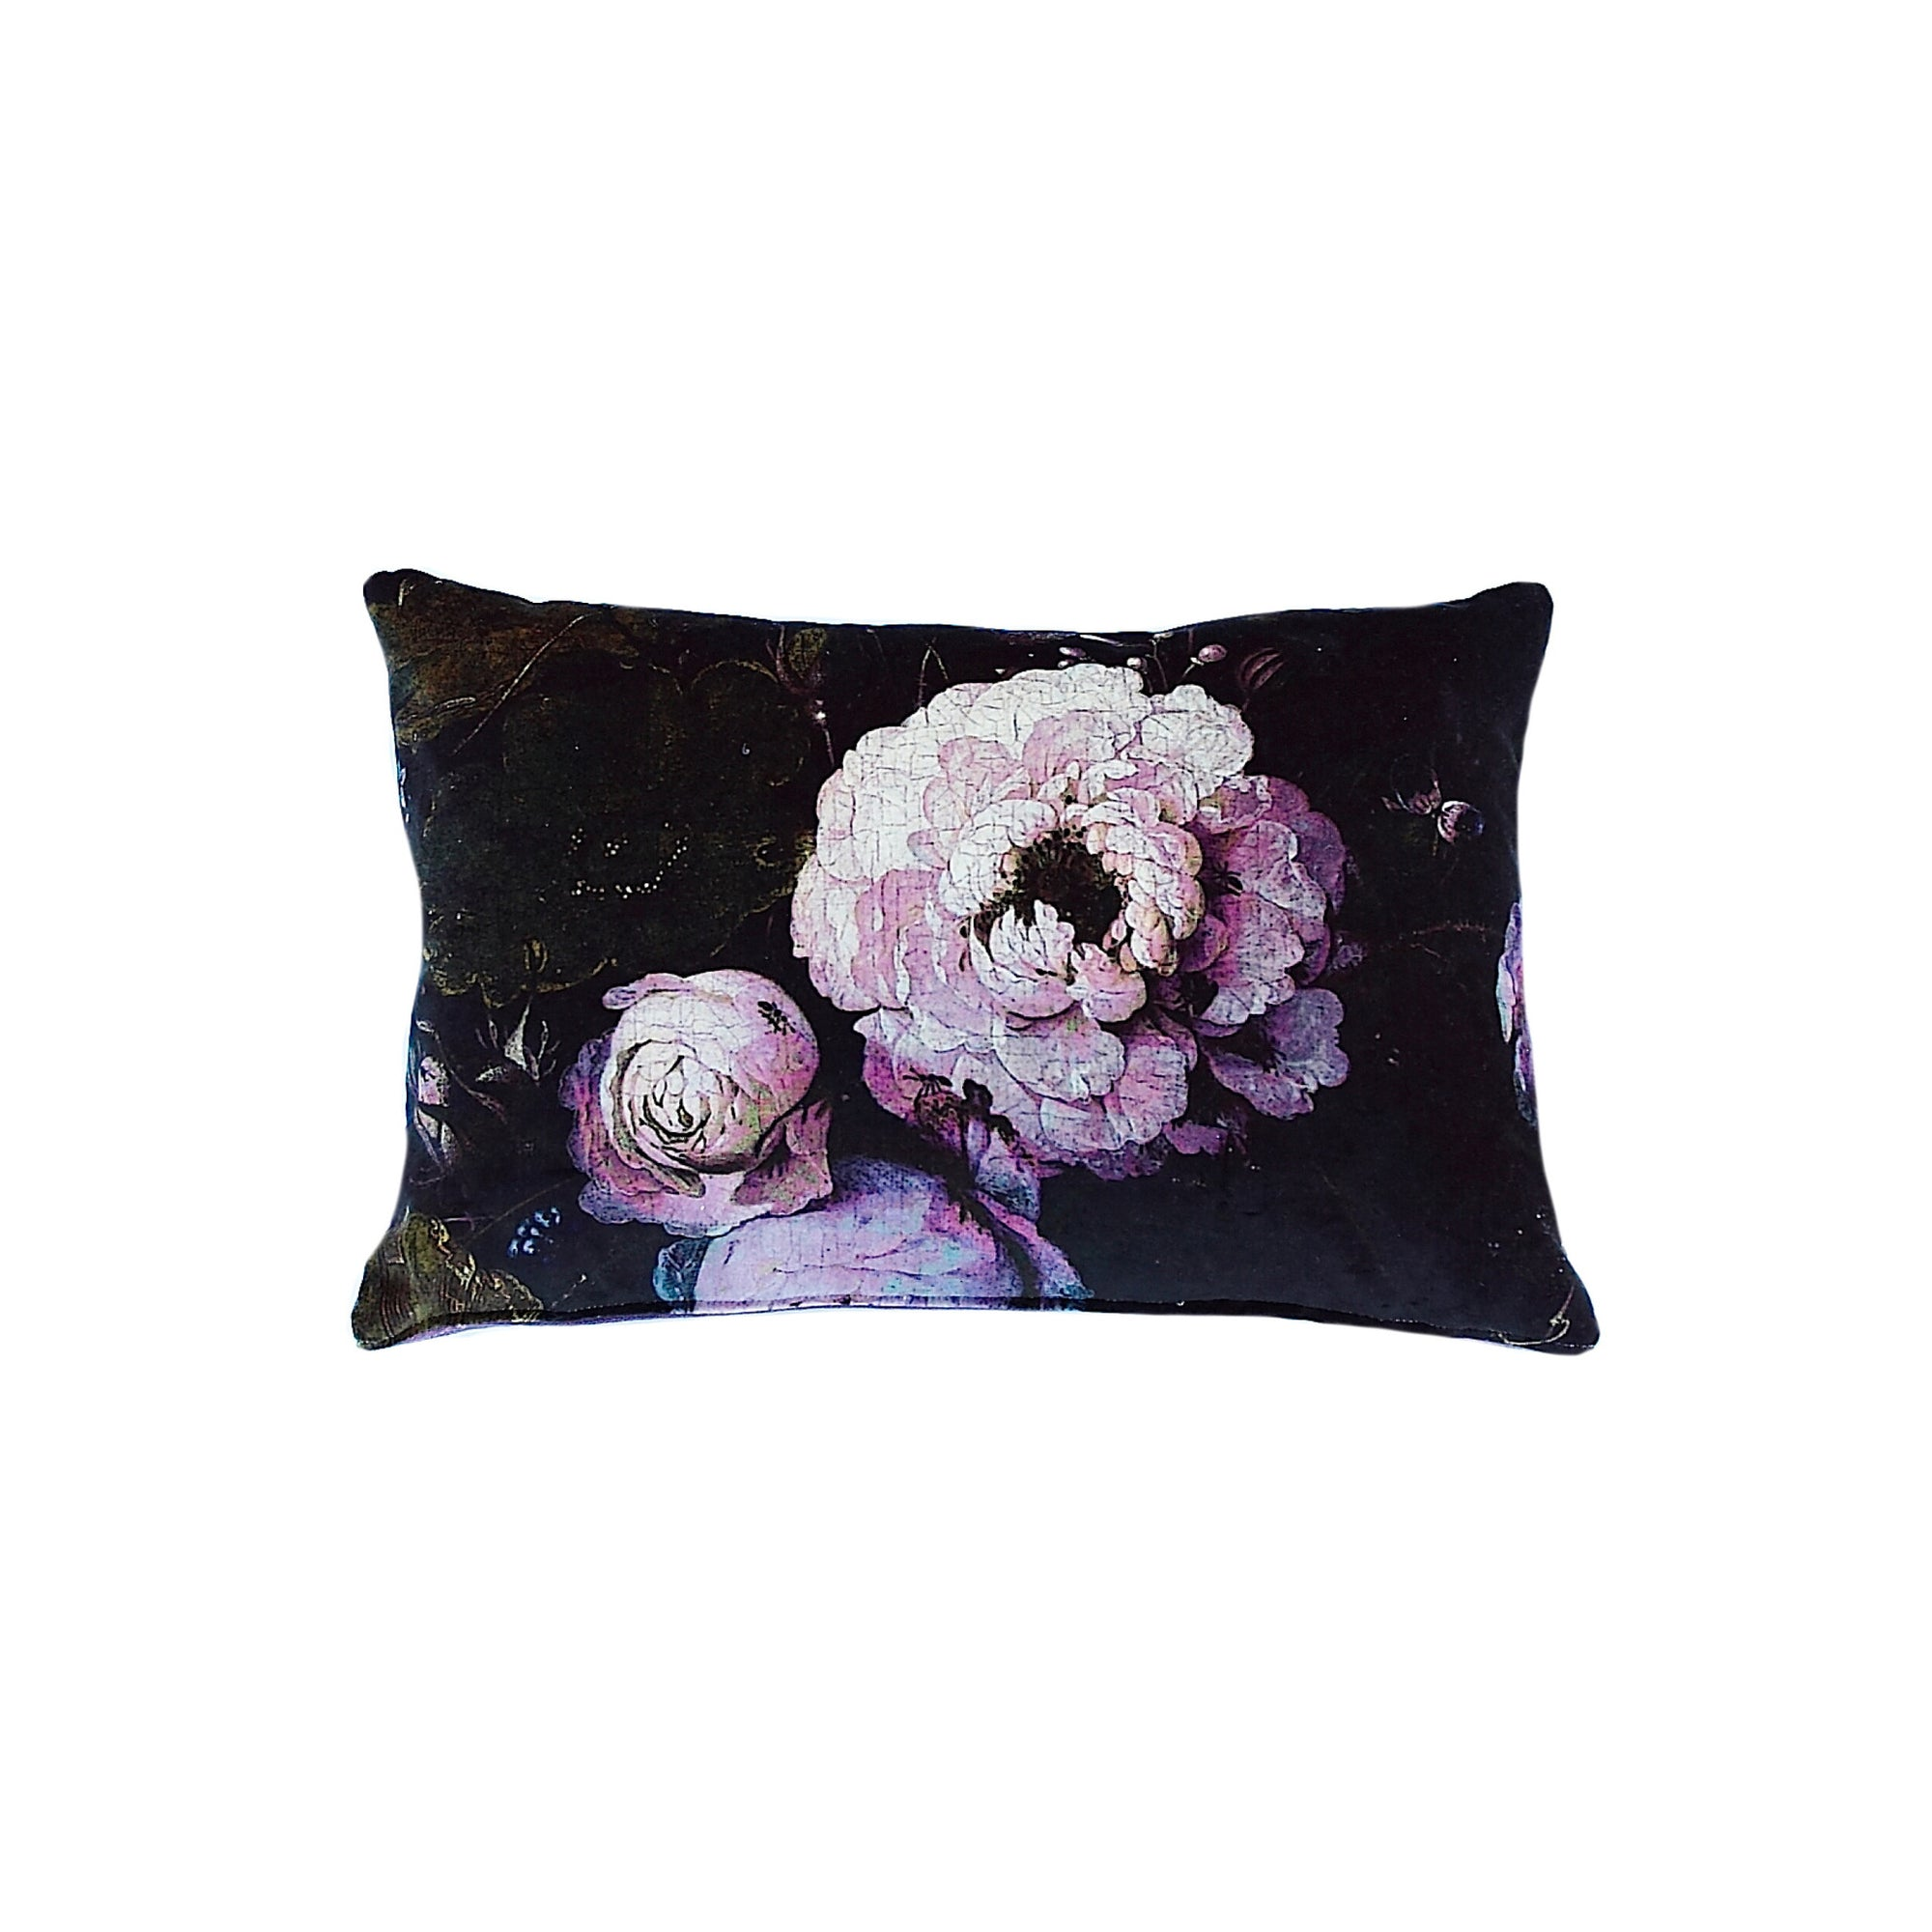 Floralisim Peonies Velvet Cushion 50cm x 30cm, B&C-Boho & Co, Putti Fine Furnishings